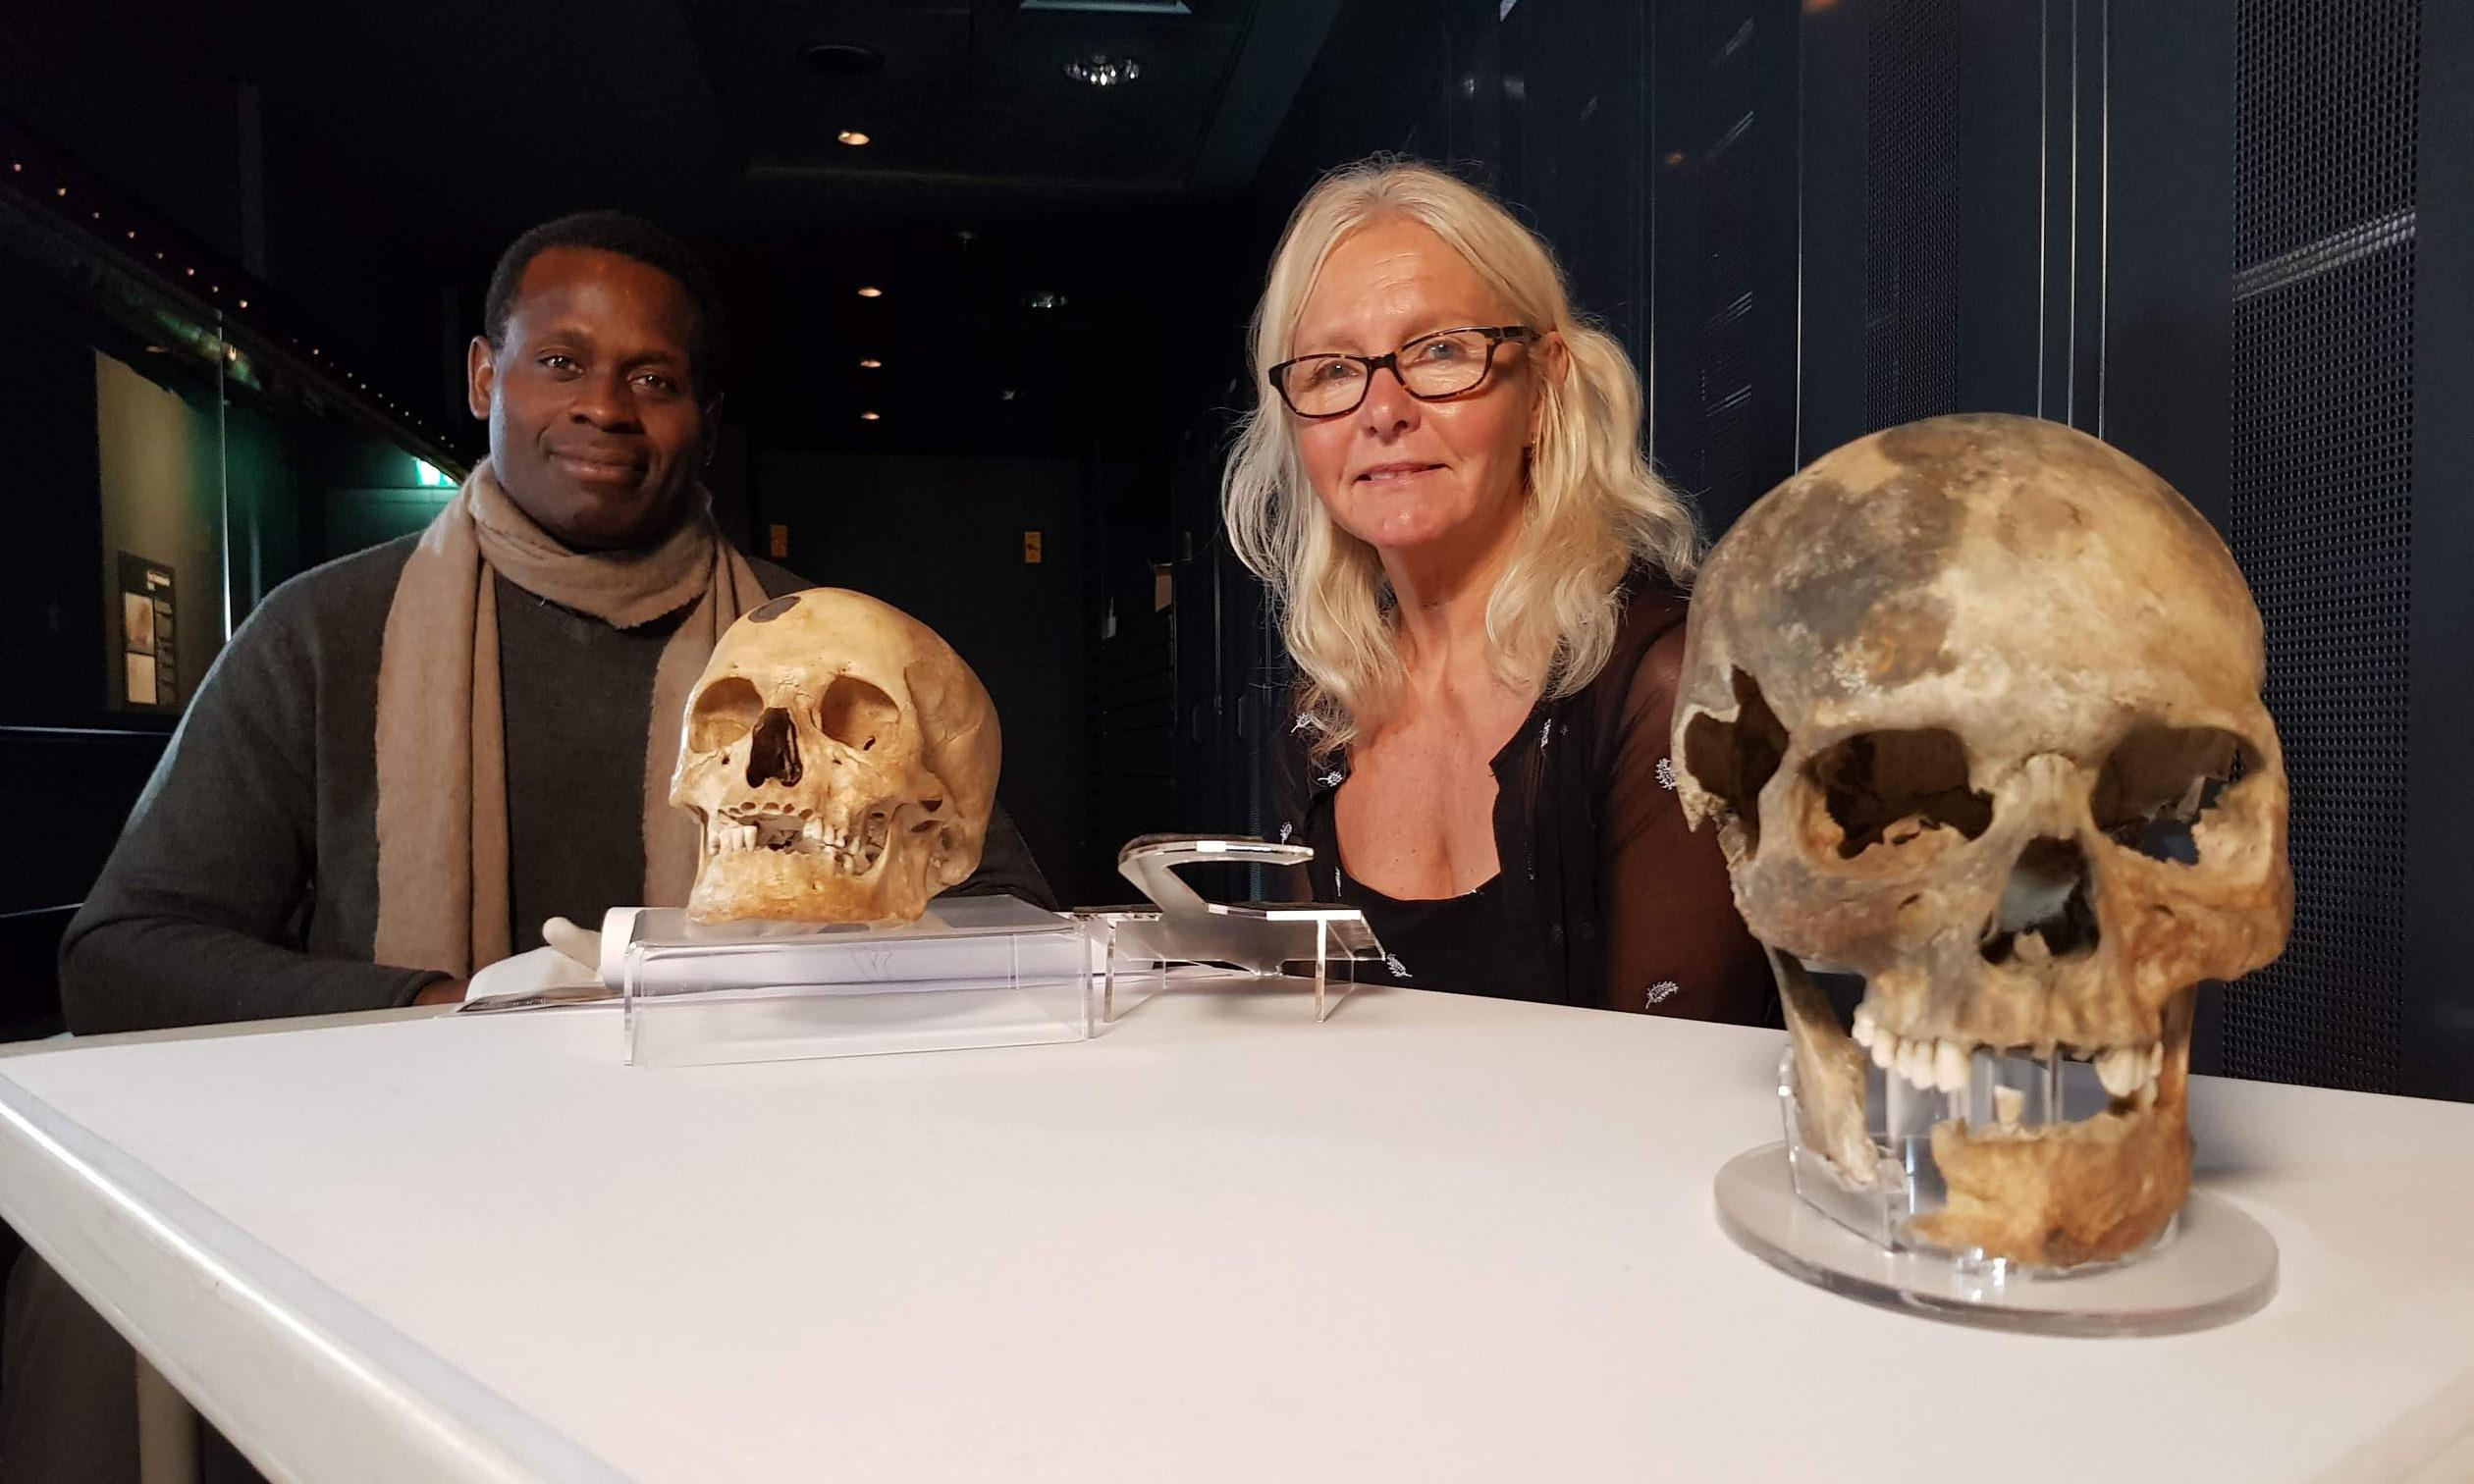 Mary Rose crew might have included sailors of African heritage